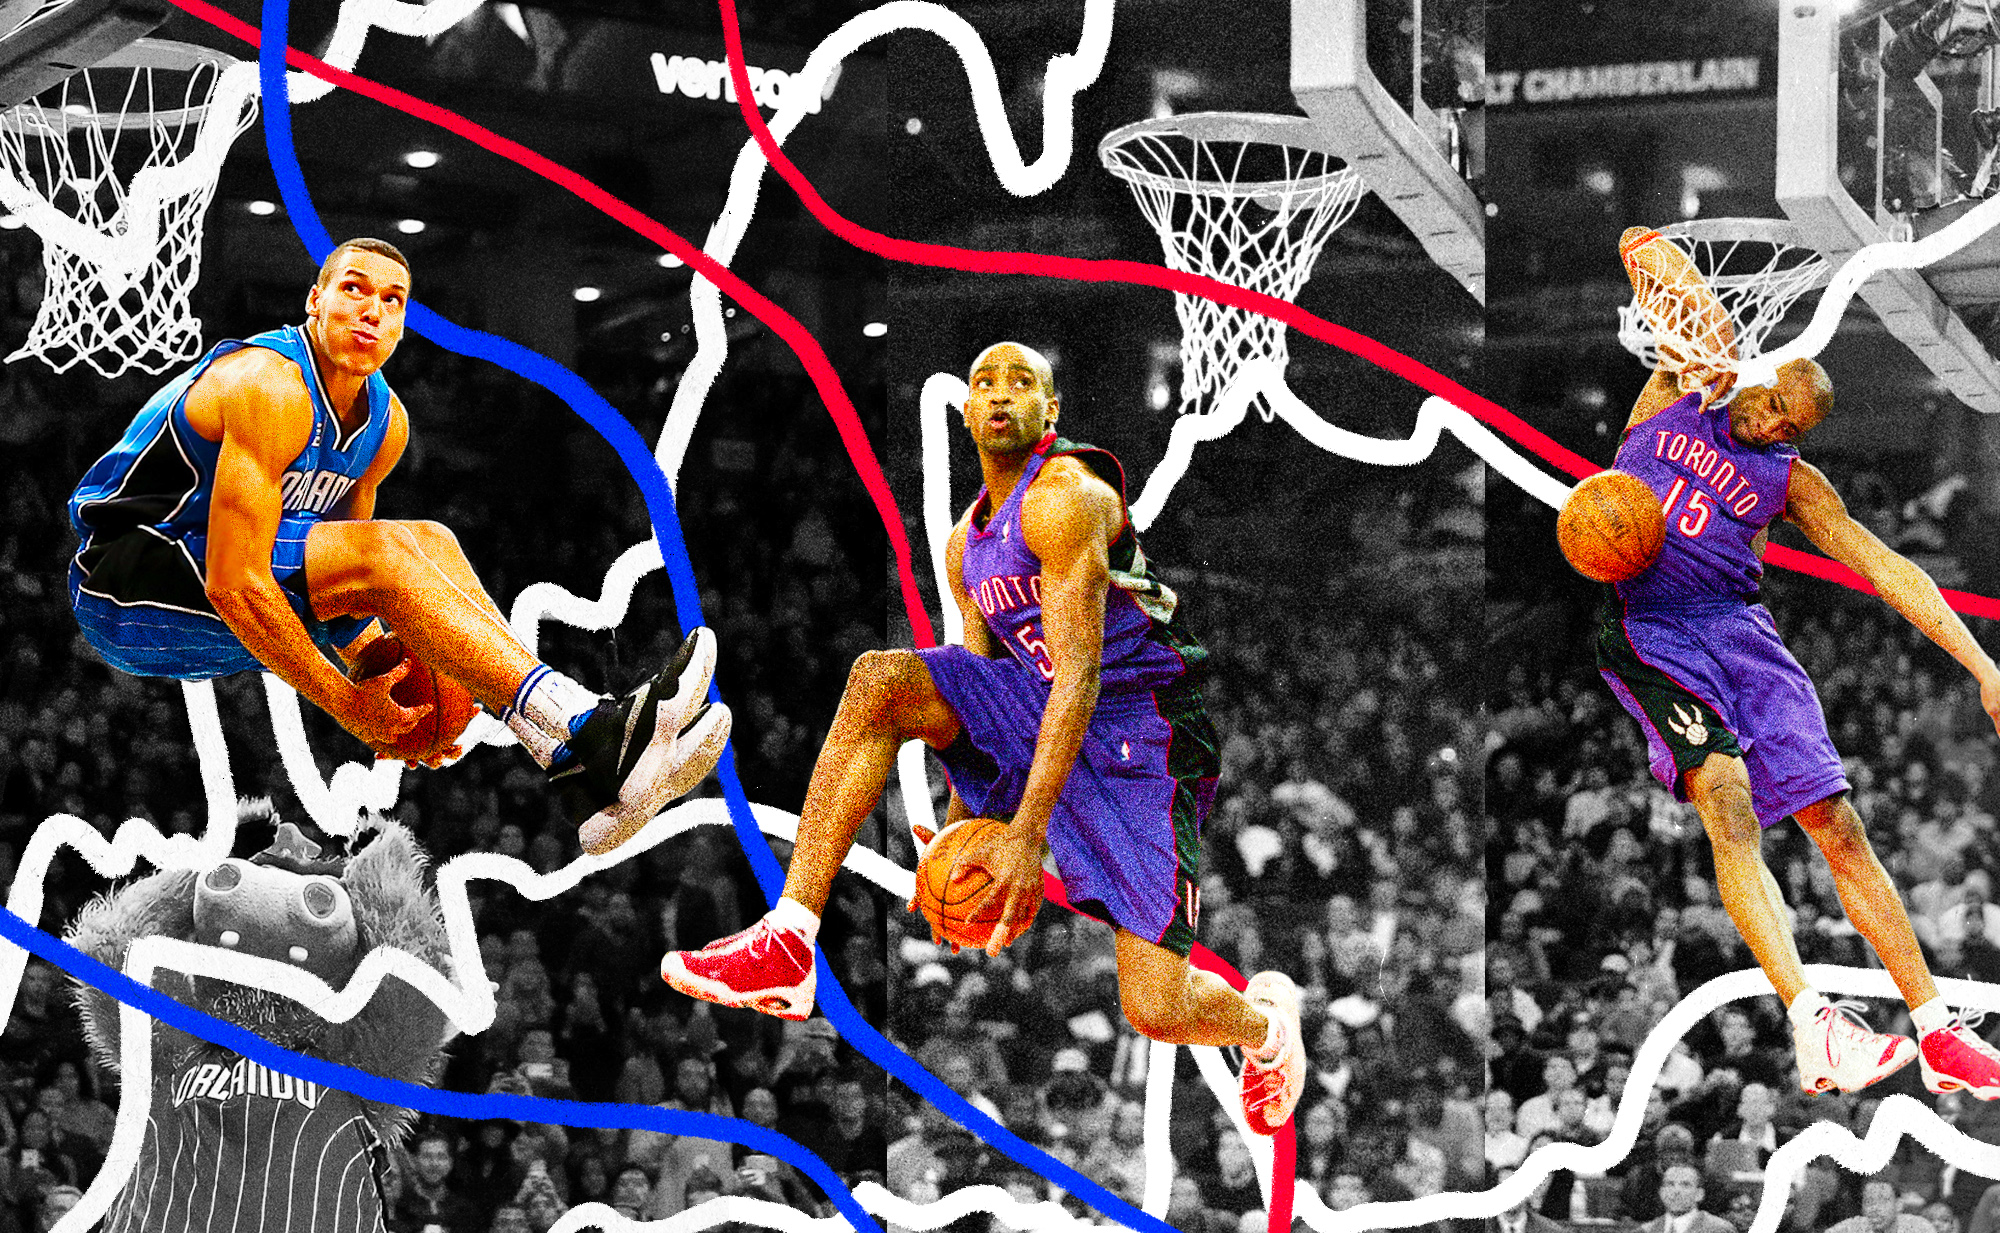 separation shoes 1d711 30a6c NBA Dunk Contests 76 perfect score dunks, ranked - SBNation.